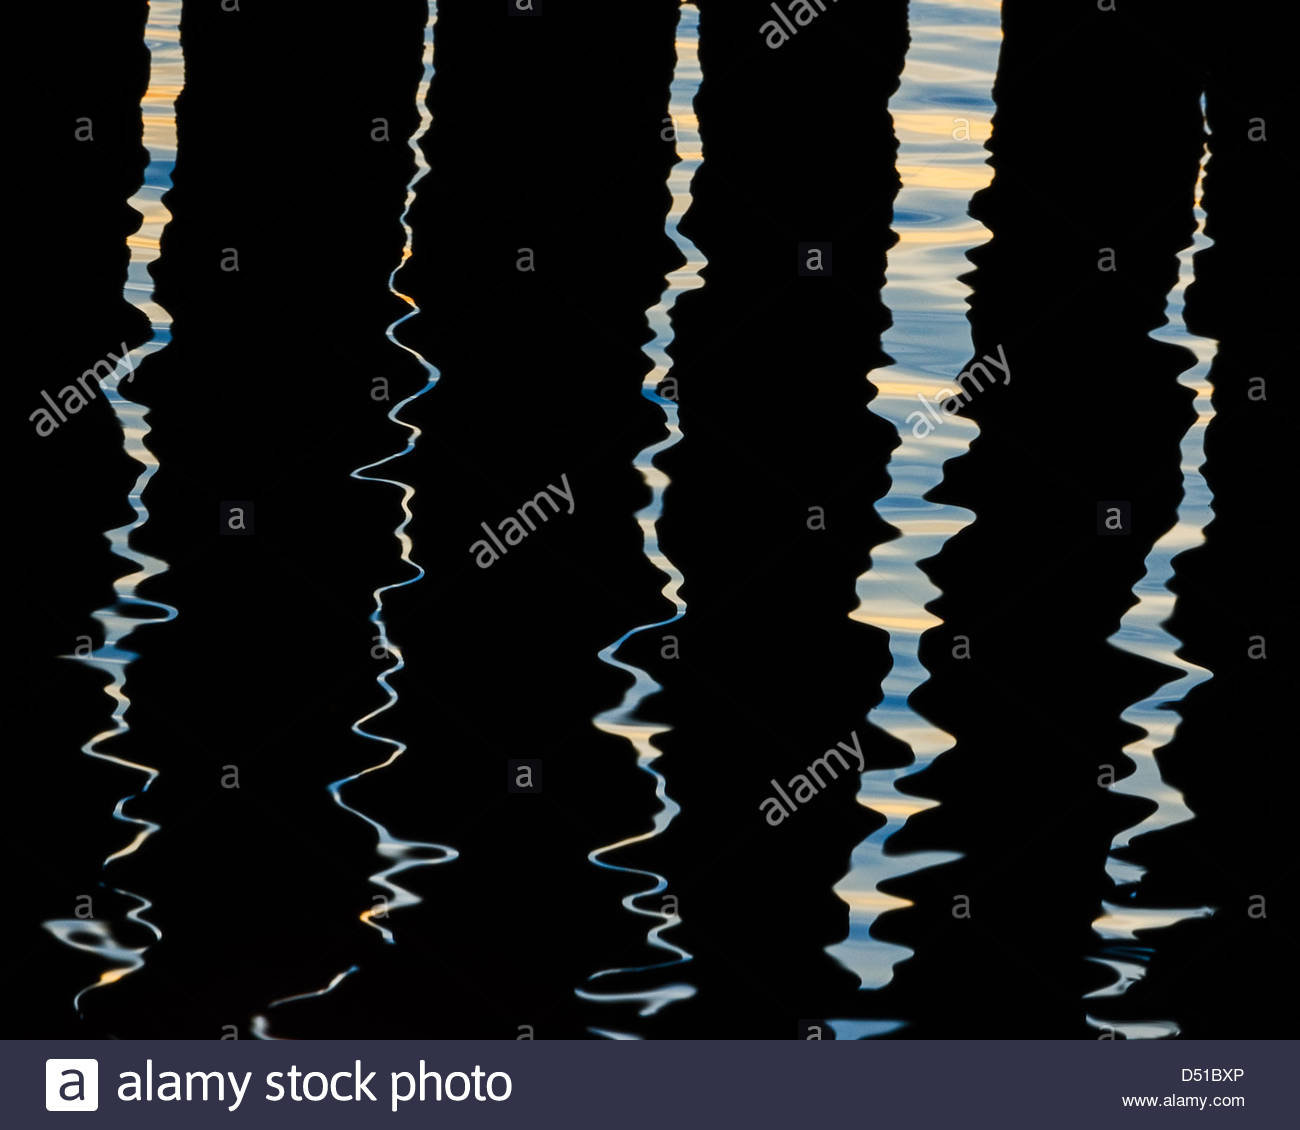 Abstract water reflections at Tumlehed, Hisingen, Sweden - Stock Image